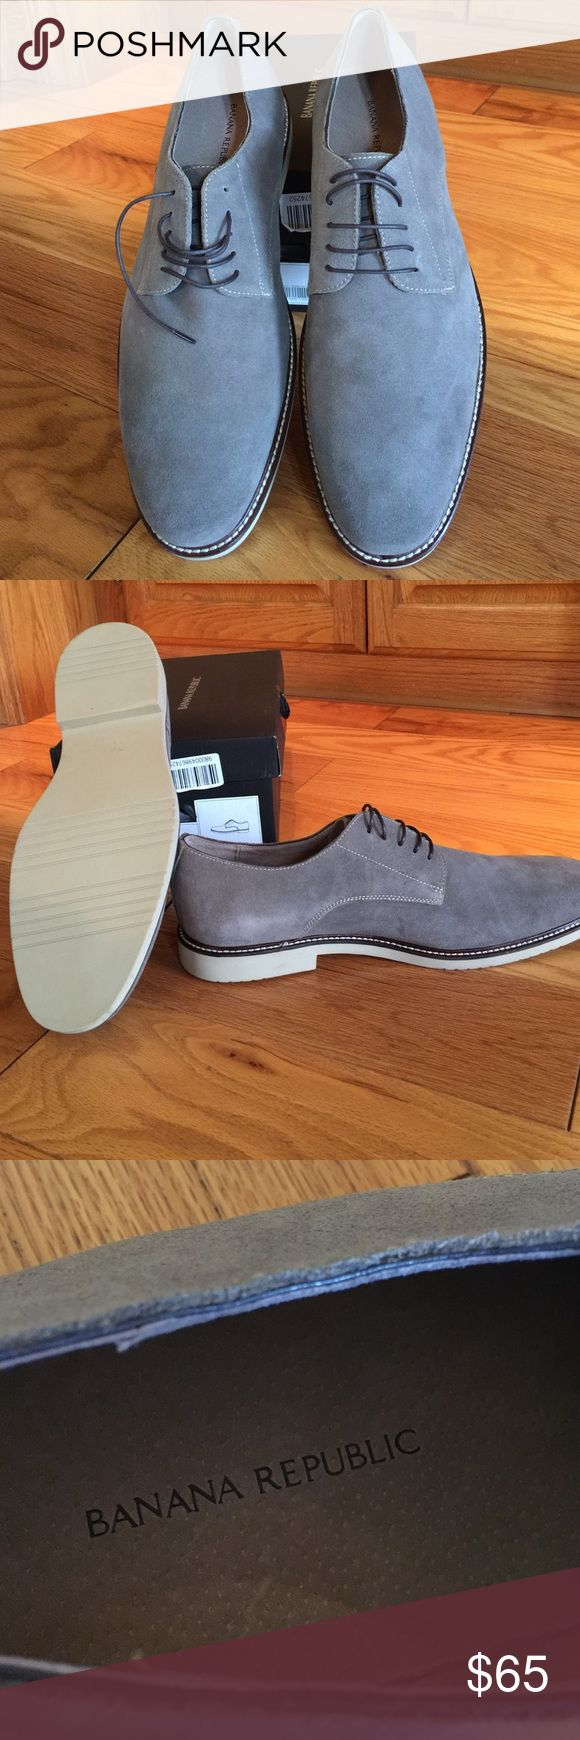 Men's Suede Dress Shoes by Banana Republic NEVER WORN!!!  Have original box.  It is grey suede leather. Has an extra pair of shoe laces.  Outer sole is man made material. Awesome shoes for FALL!!! Banana Republic Shoes Oxfords & Derbys